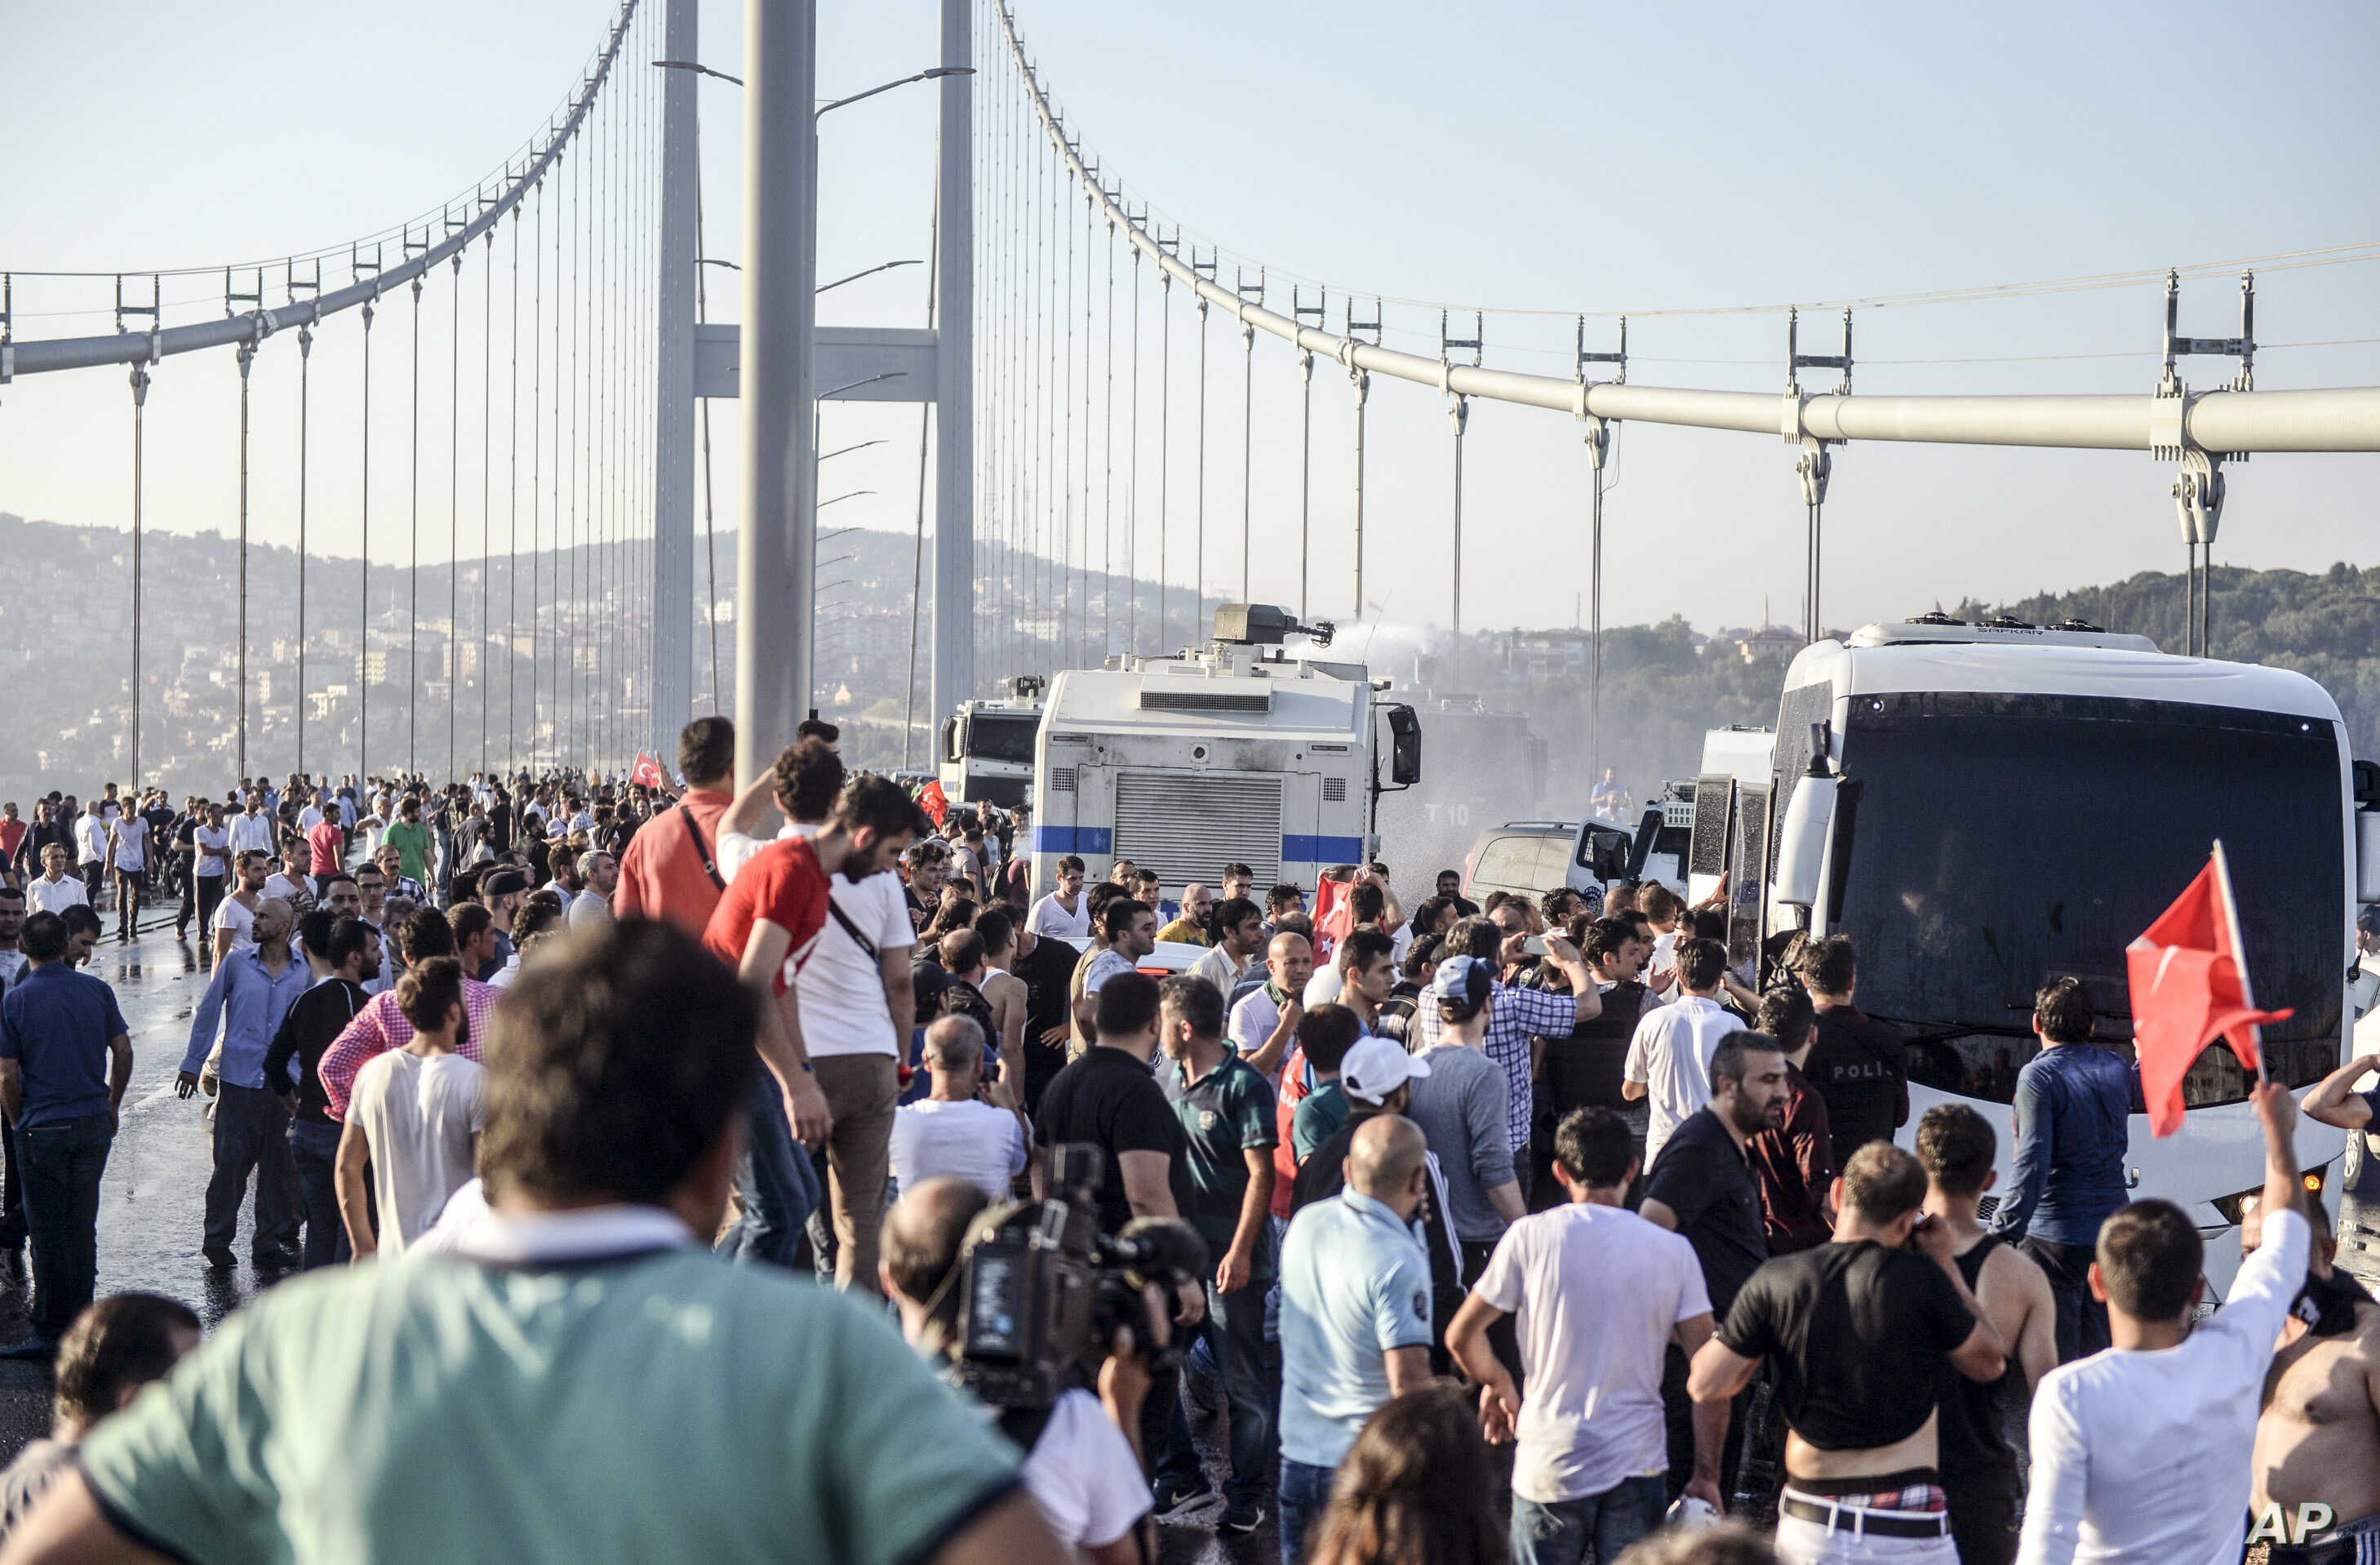 People against the attempted coup gather on Istanbul's Bosporus Bridge, July 16, 2016. Coup plotters had briefly closed the bridge and another span over the Bosphorus Strait in their attempted takeover.